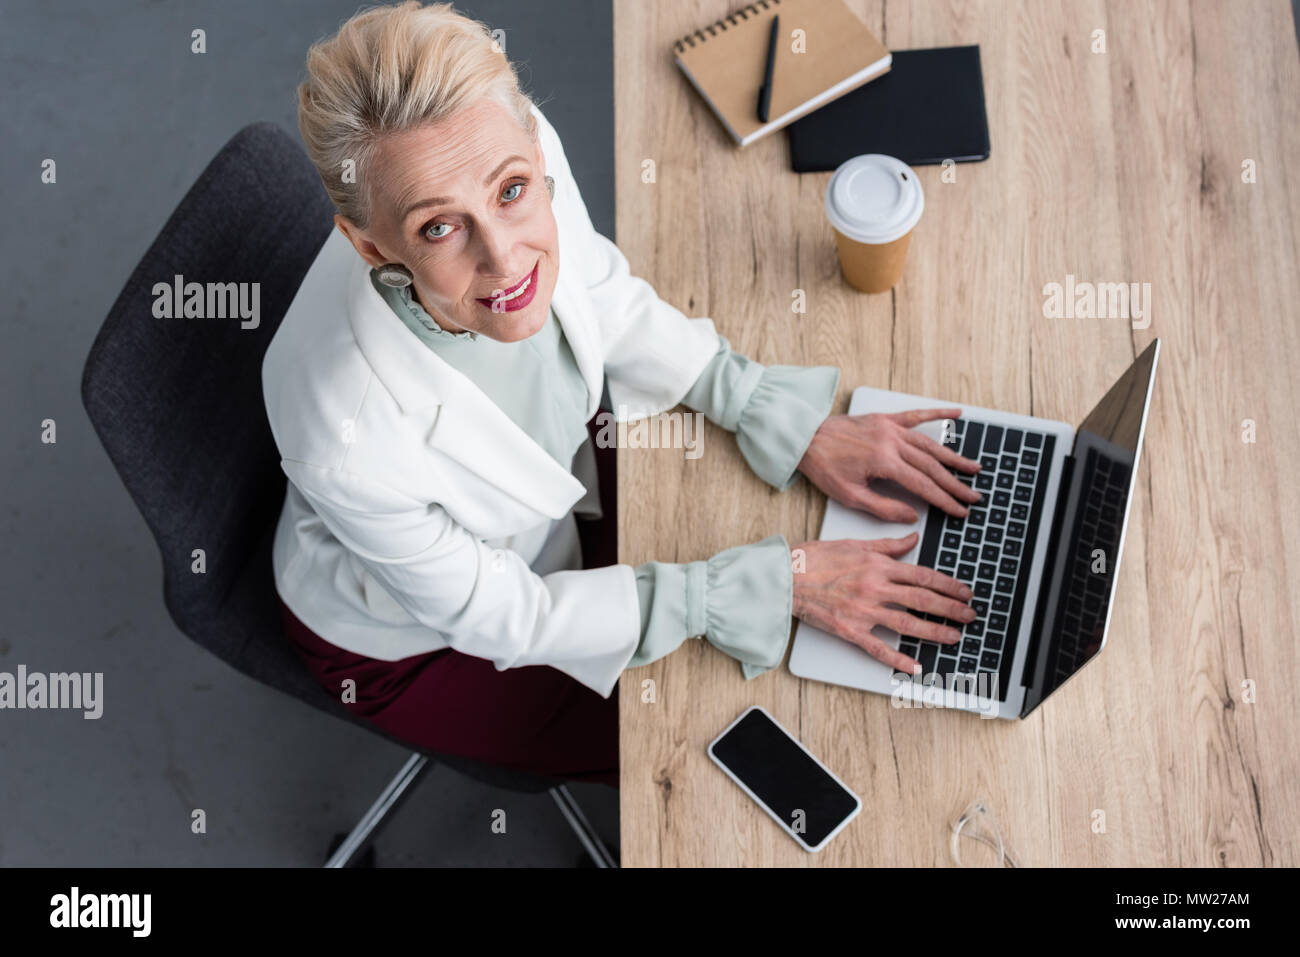 overhead view of elegant business woman working with laptop in modern office - Stock Image